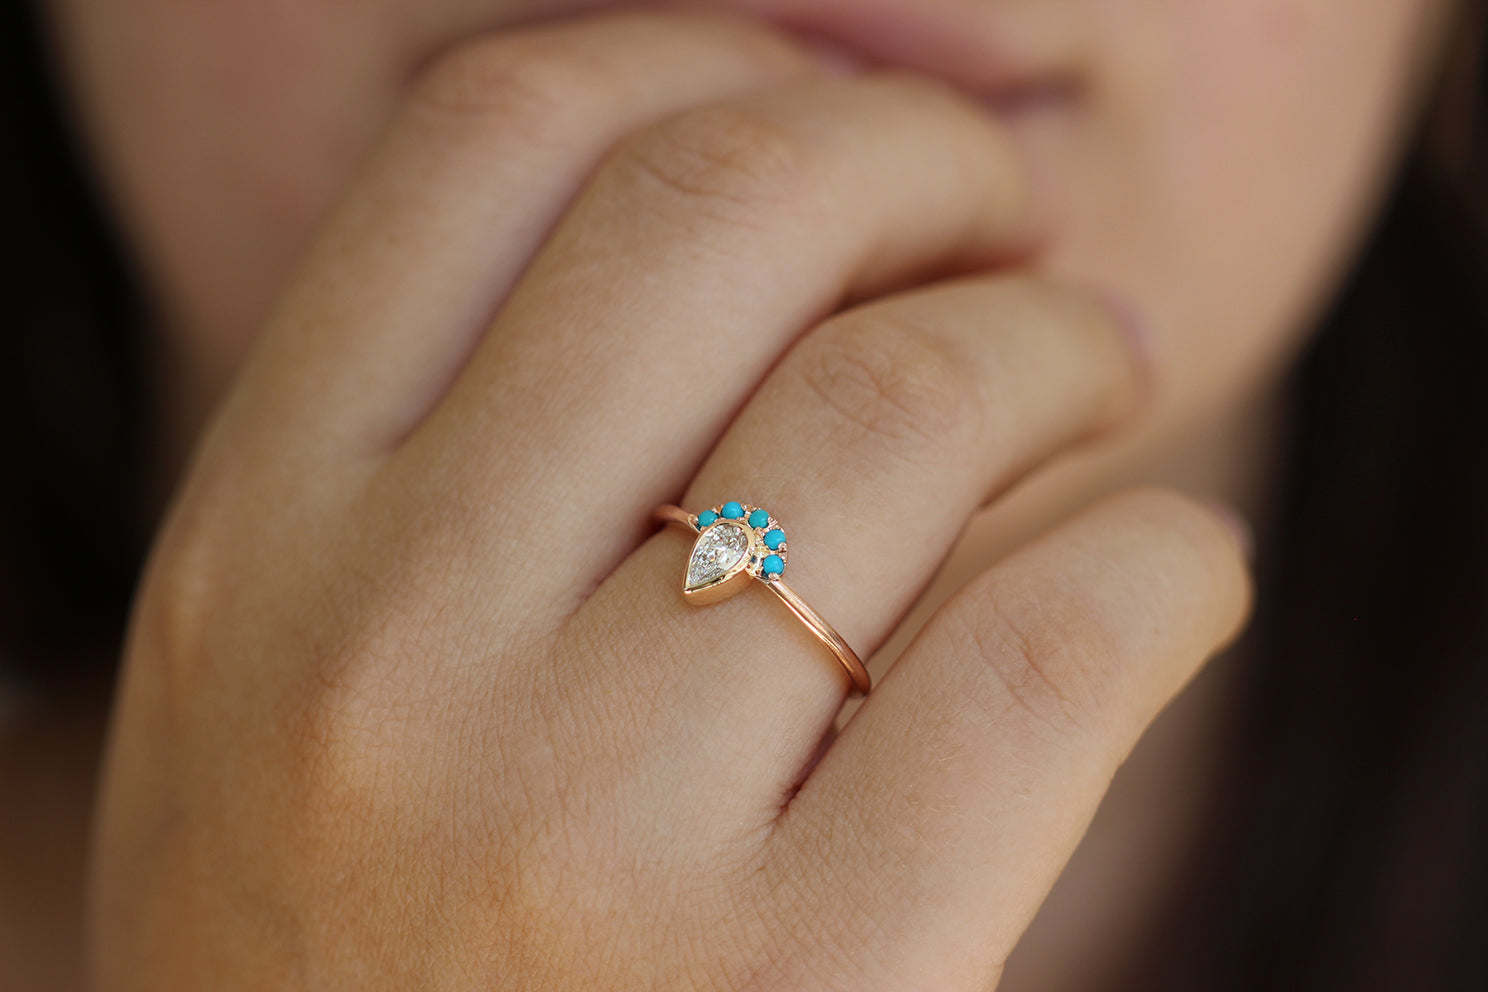 Pear Cut Diamond Ring - Turquoise Crown Diamond Ring on Hand